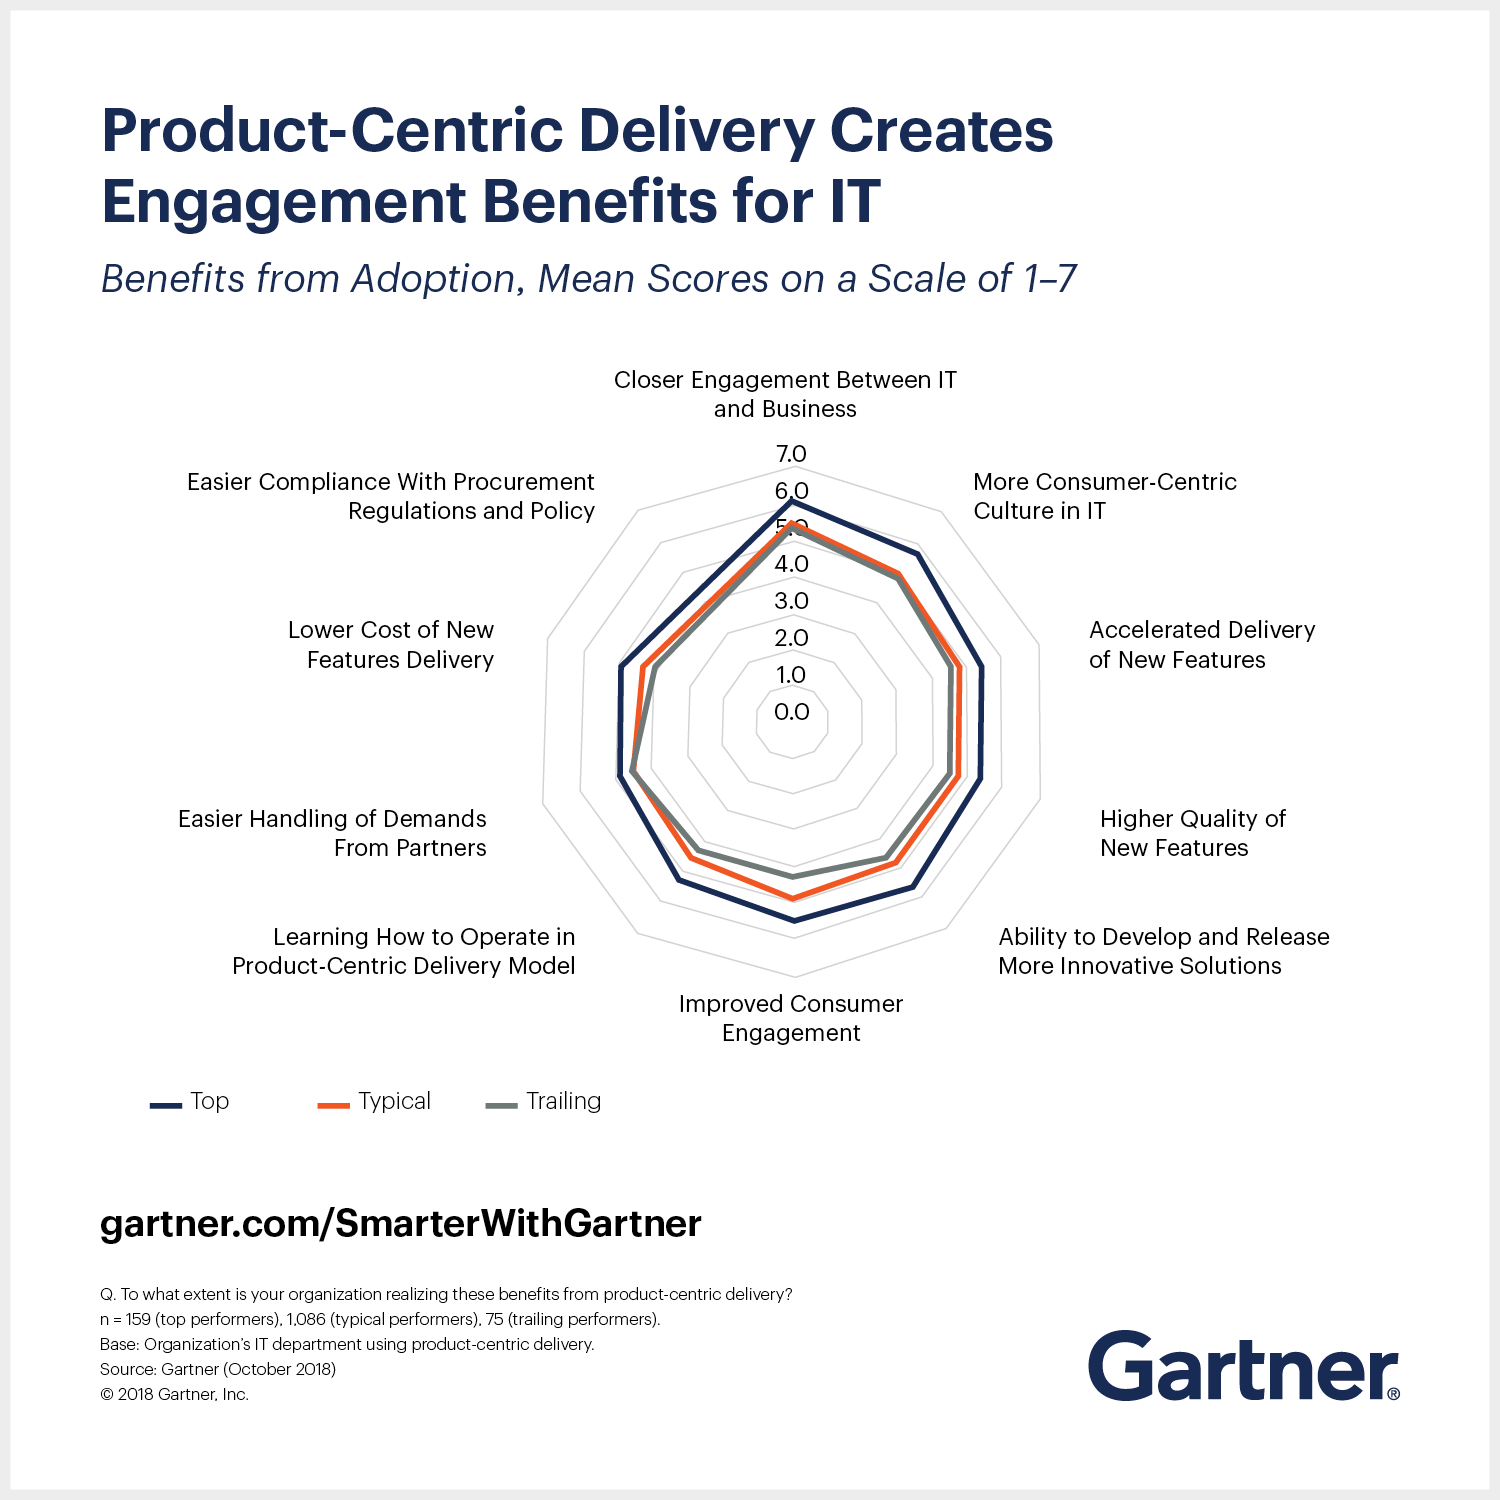 Gartner CIO Agenda 2019 shows why product-centric delivery creates engagement benefits for IT.